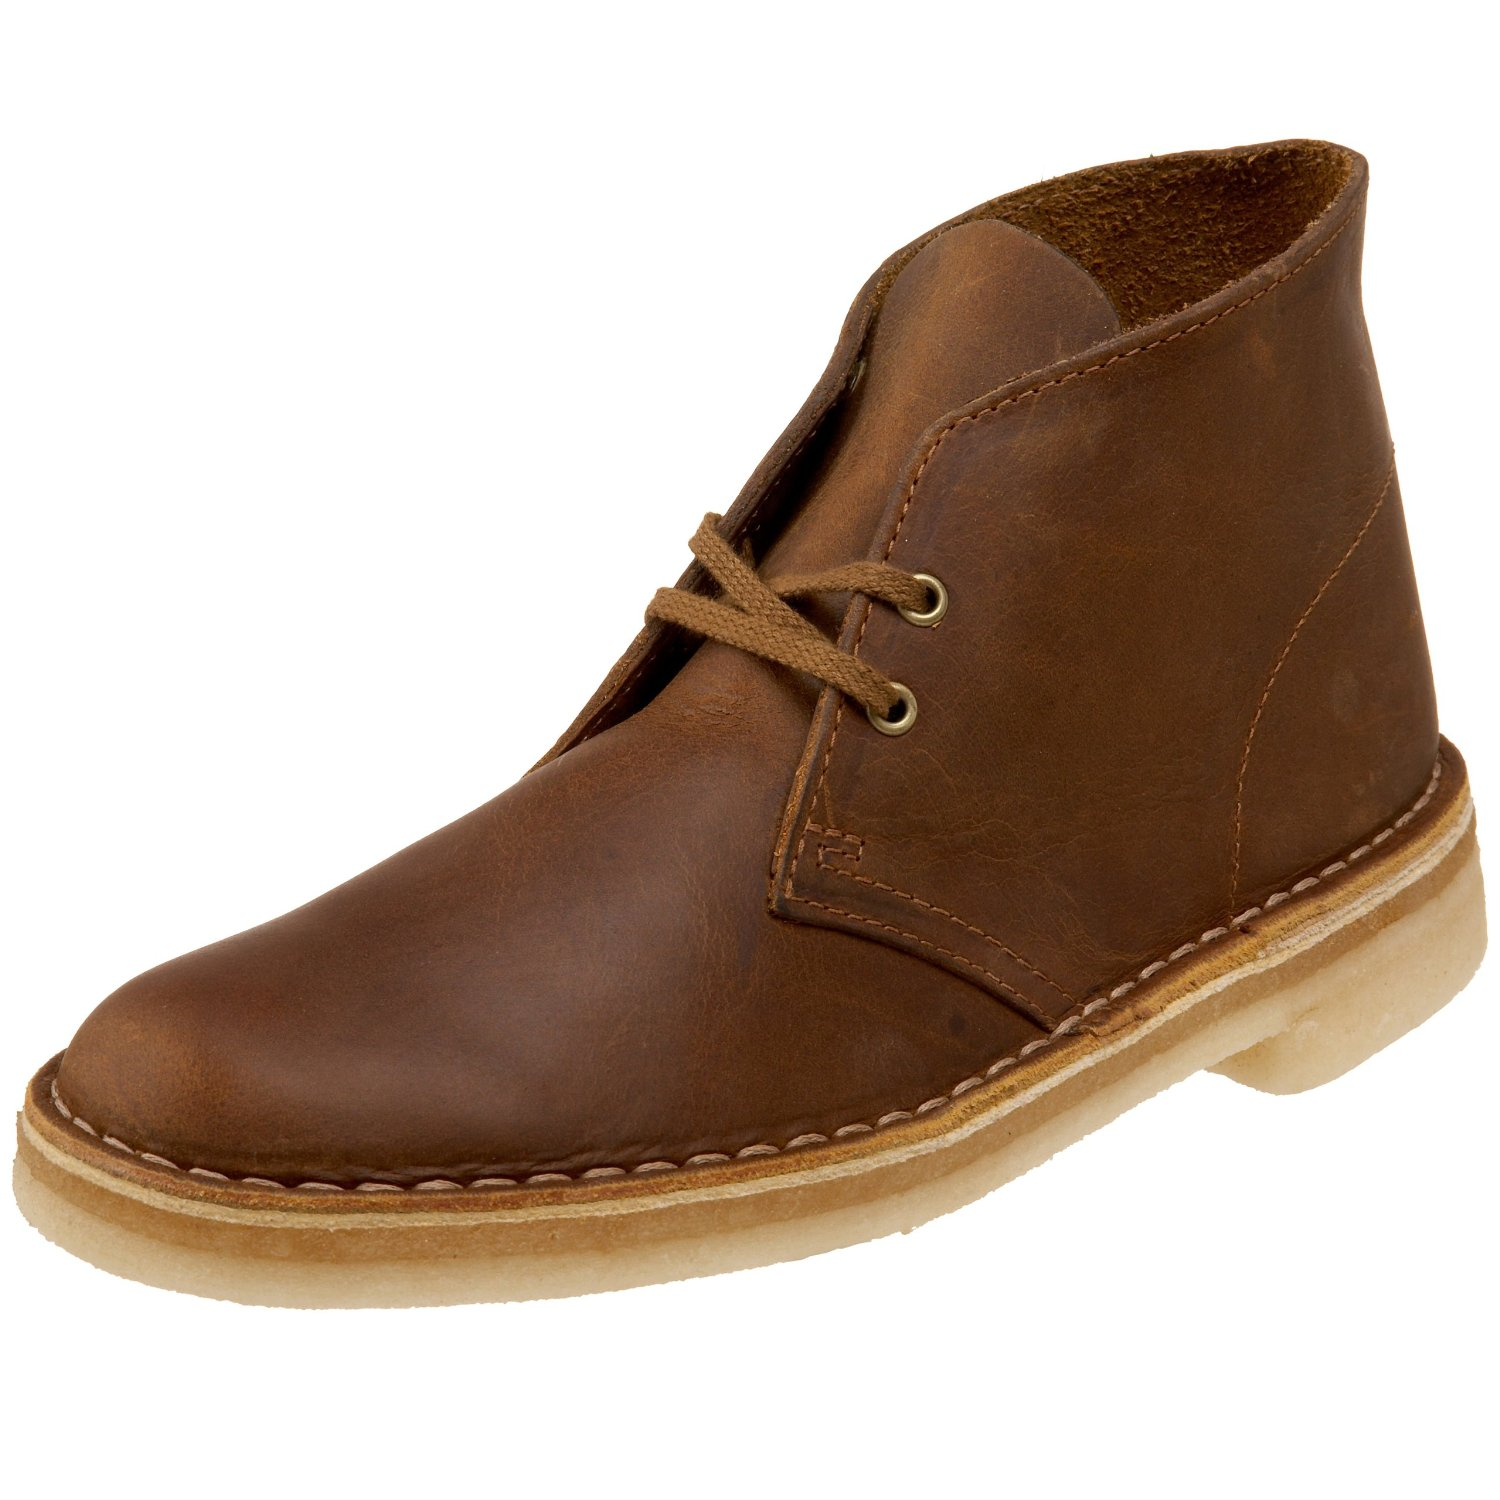 Clarks Mens Shoe With Seam Down Middle